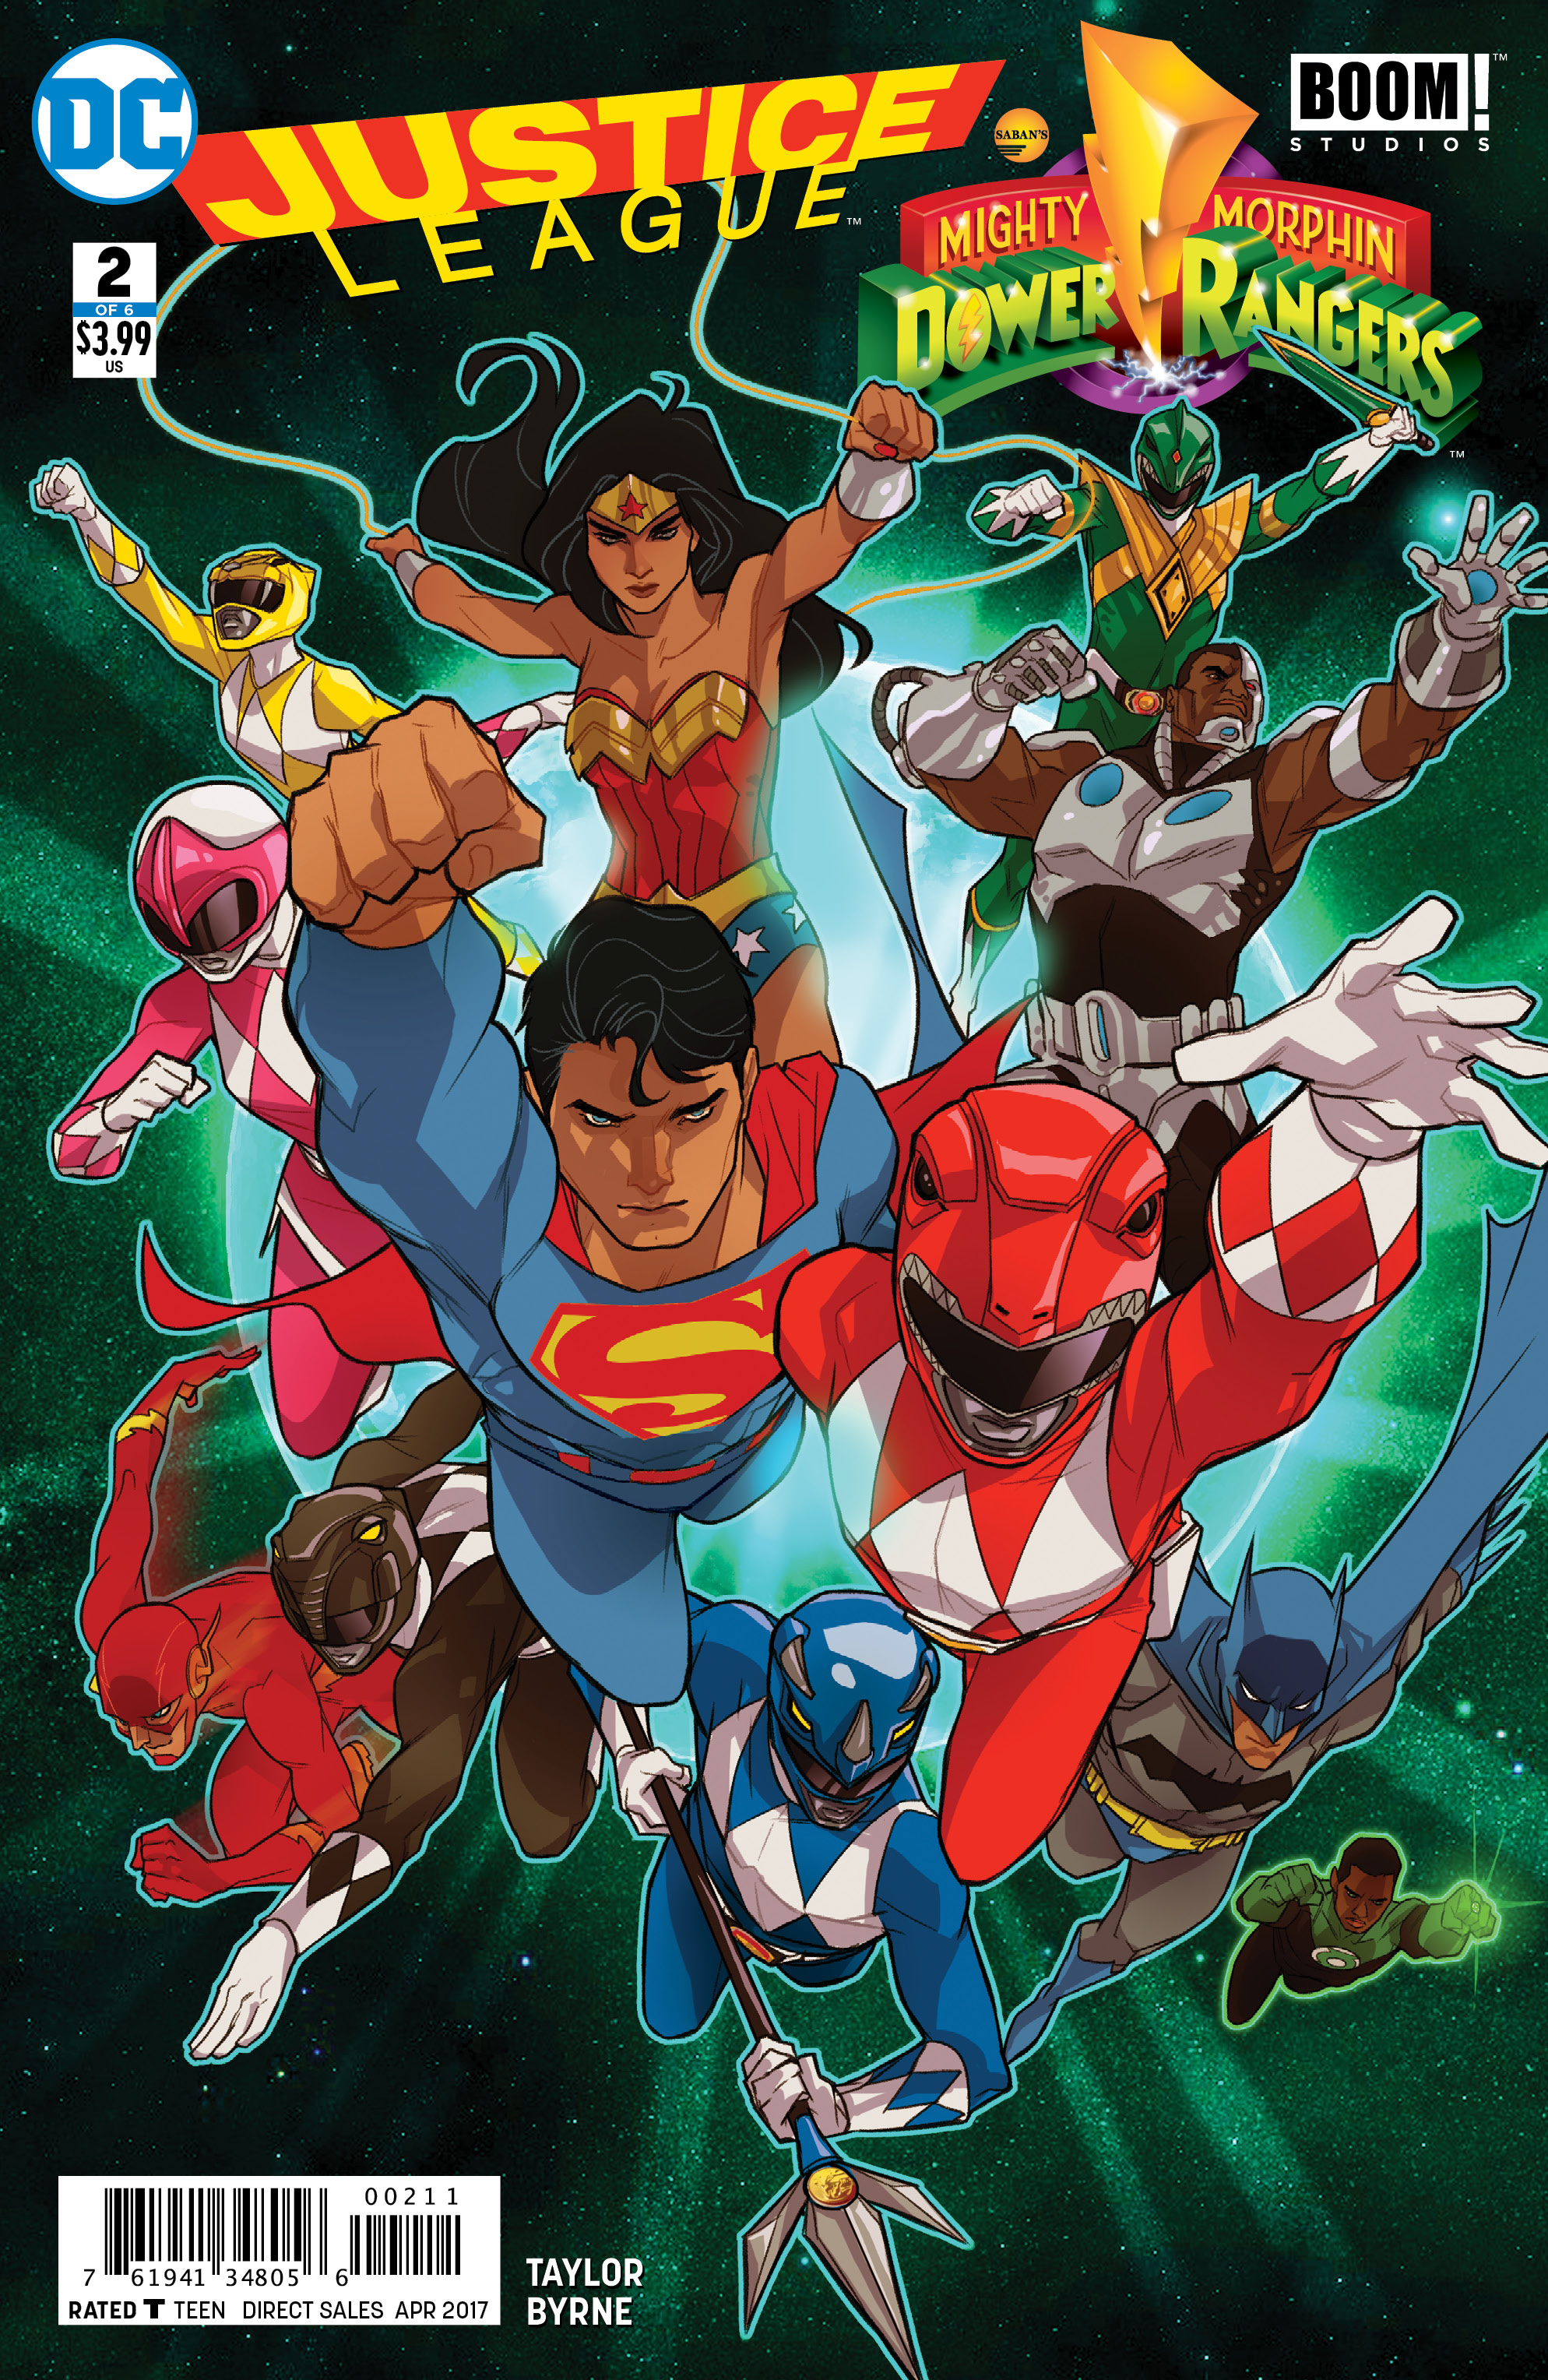 JUSTICE LEAGUE POWER RANGERS #2 (OF 6)